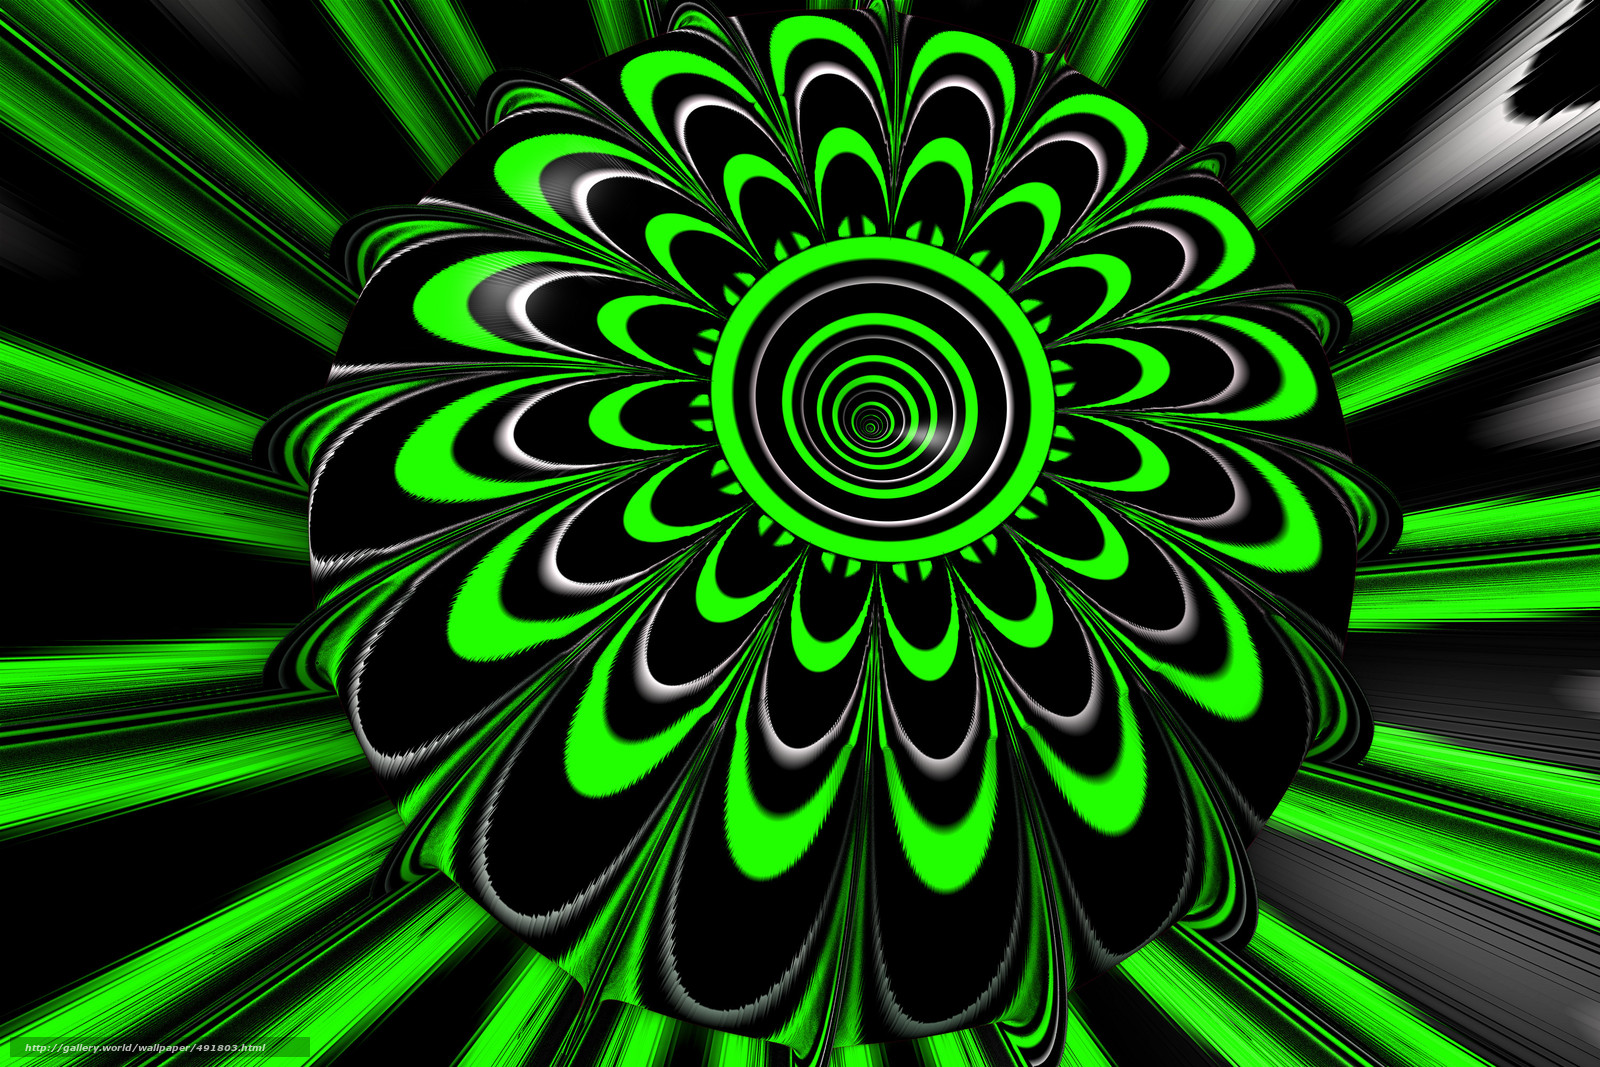 3000 x 2000 abstract wallpapers - photo #35